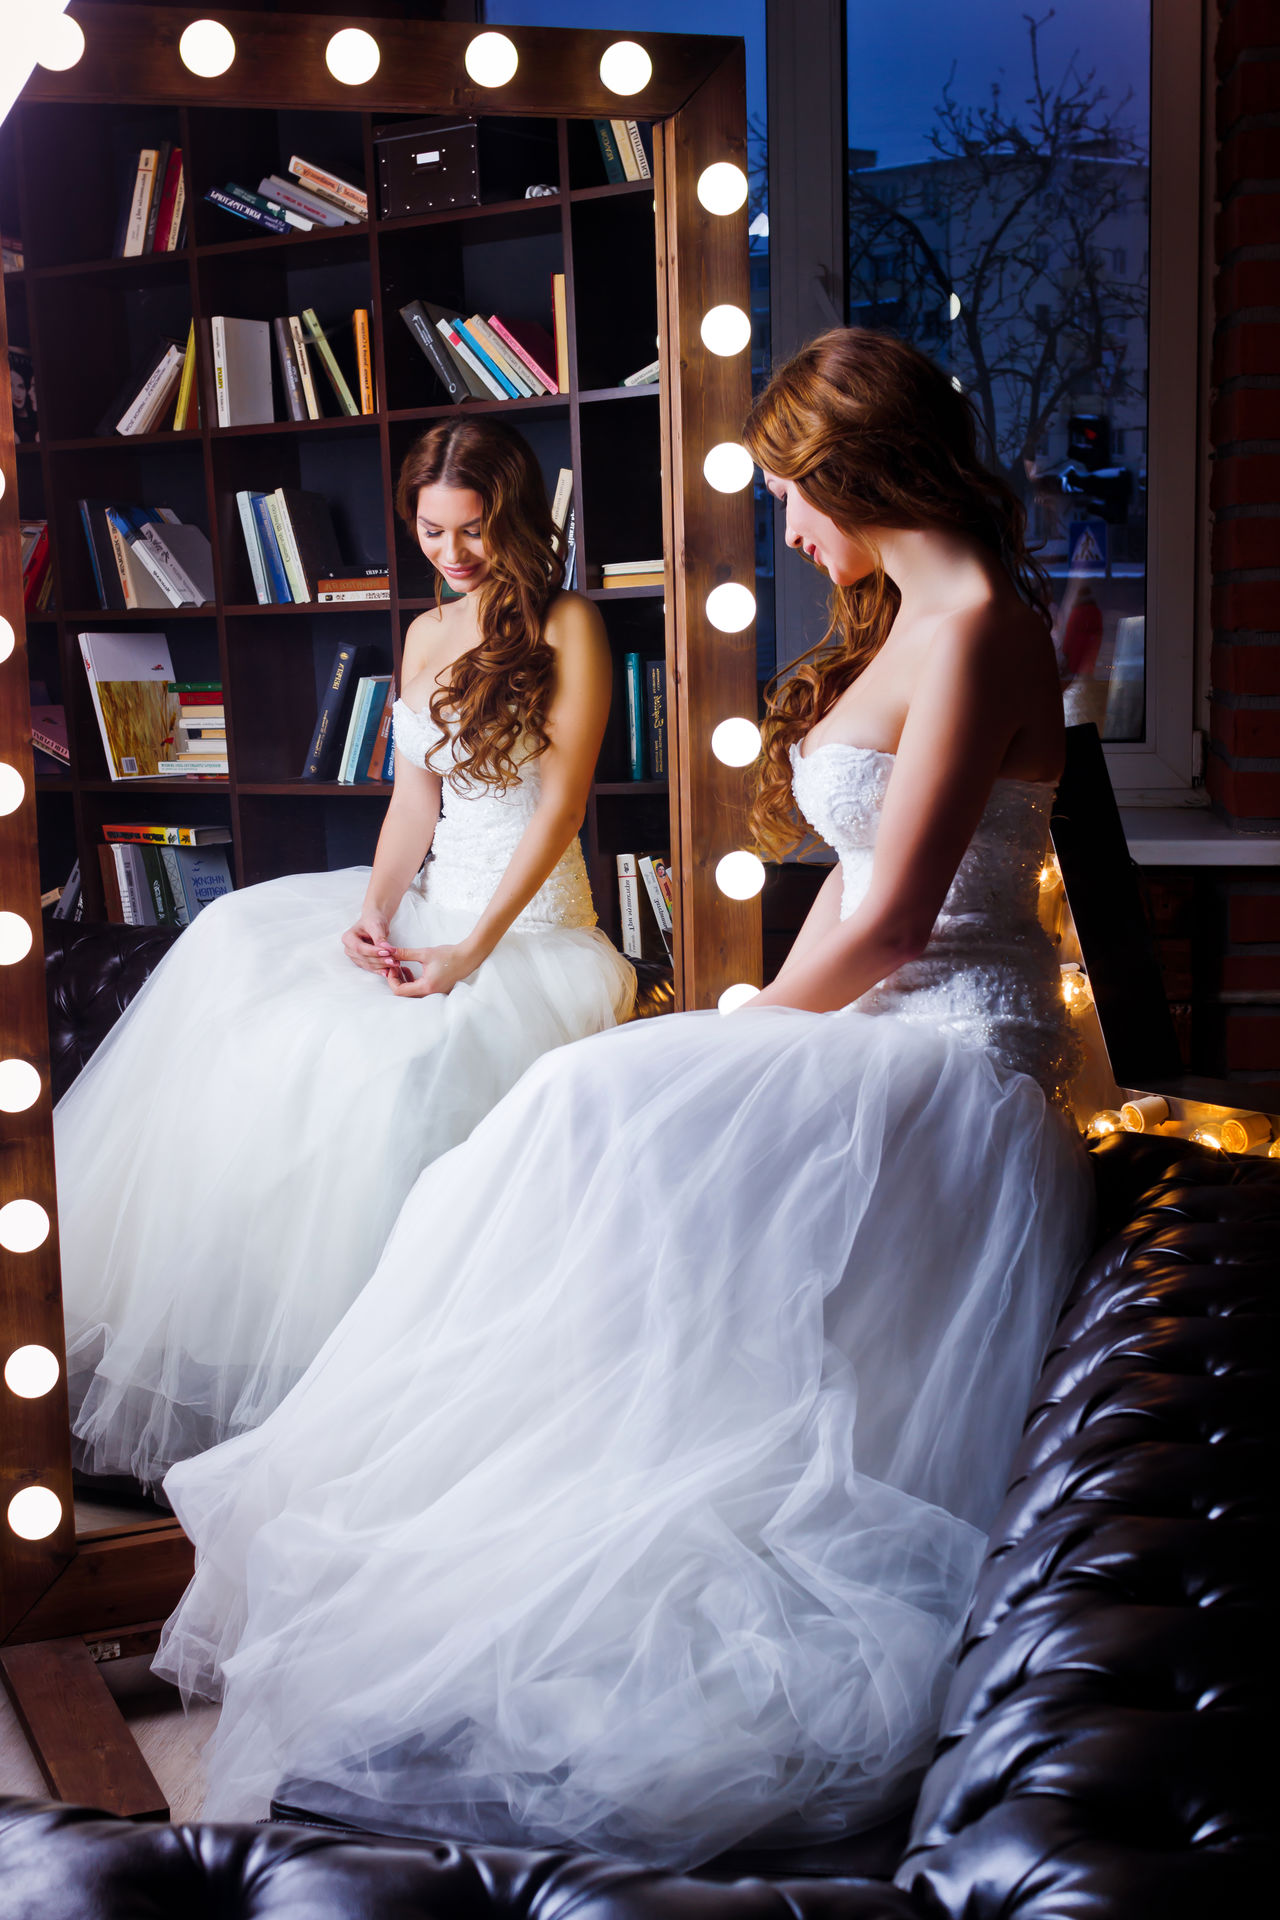 Books Bridal Shop Bride Bride And Groom Mirror Togetherness Wedding Wedding Dress White White Color